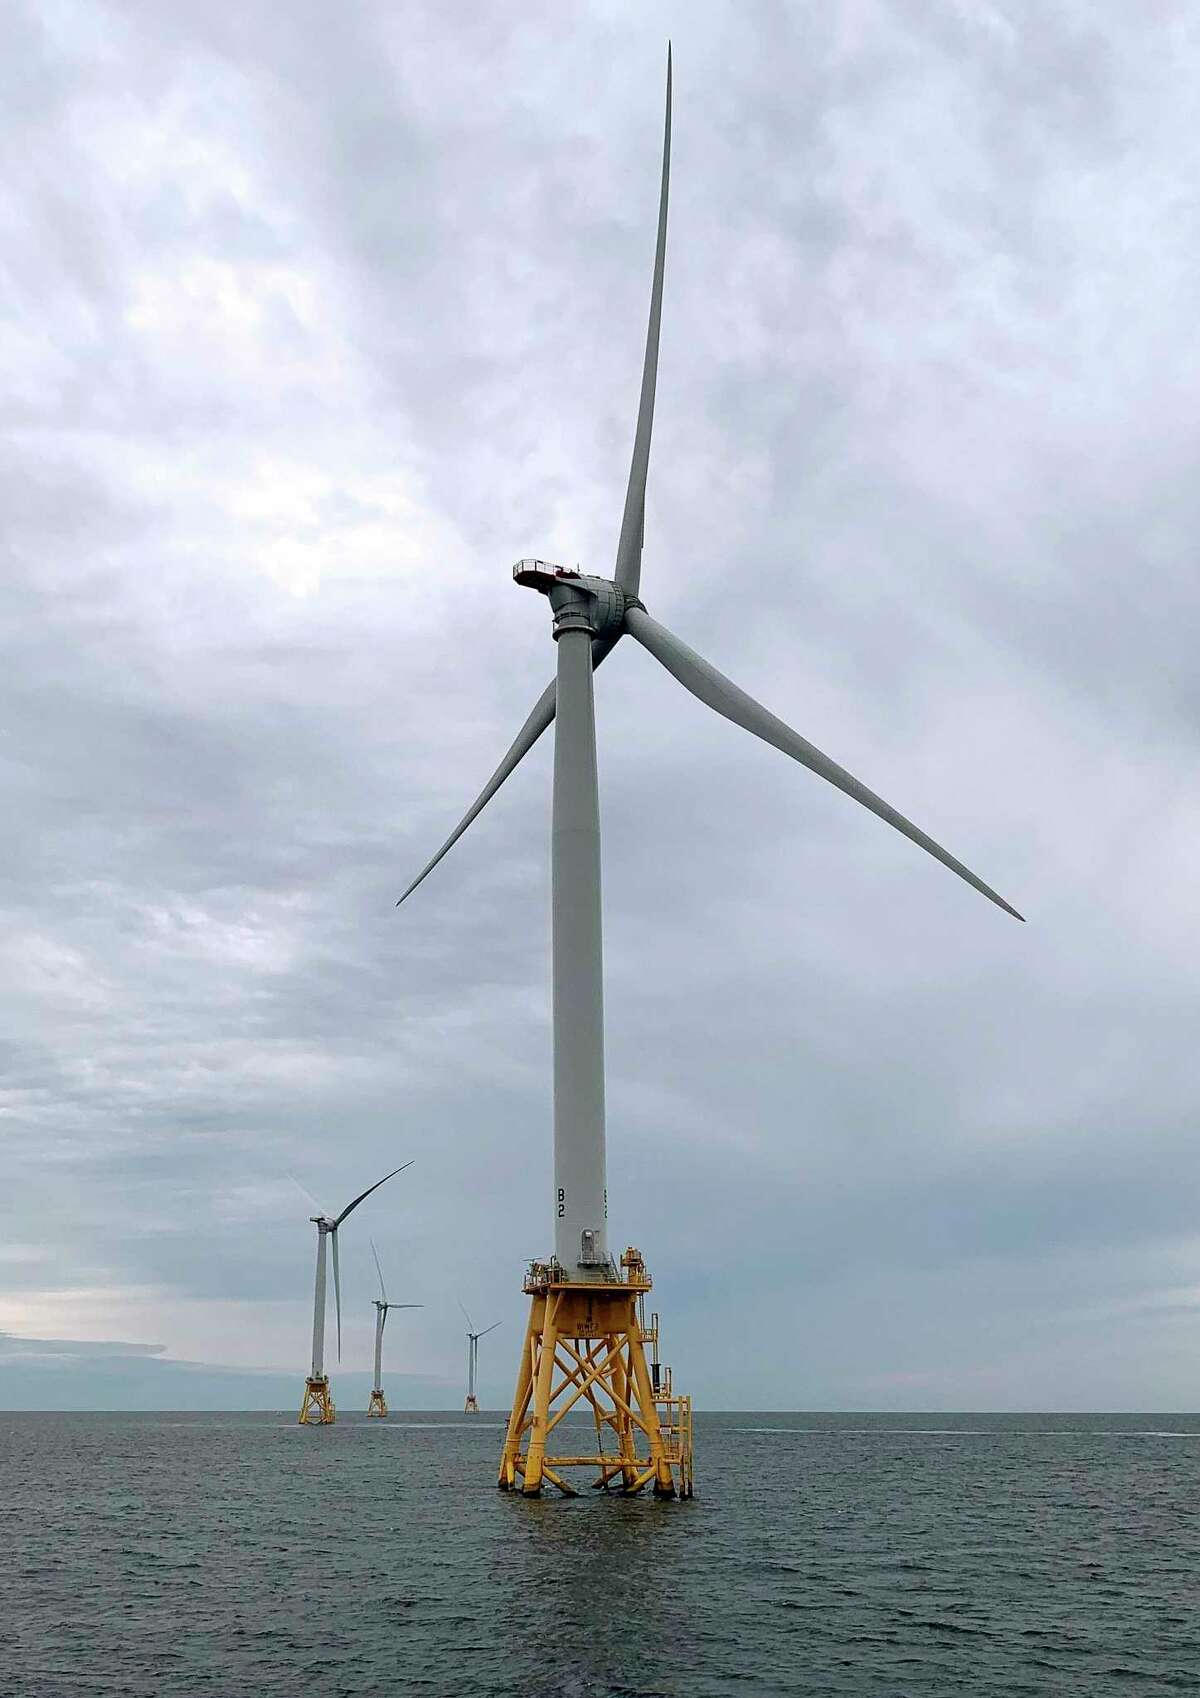 Wind turbines off Block Island, R.I. in August 2019. Exiting September, development groups filed plans for new wind farms off New England's southern coast to supply electricity to Connecticut. (AP Photo/Rodrique Ngowi)